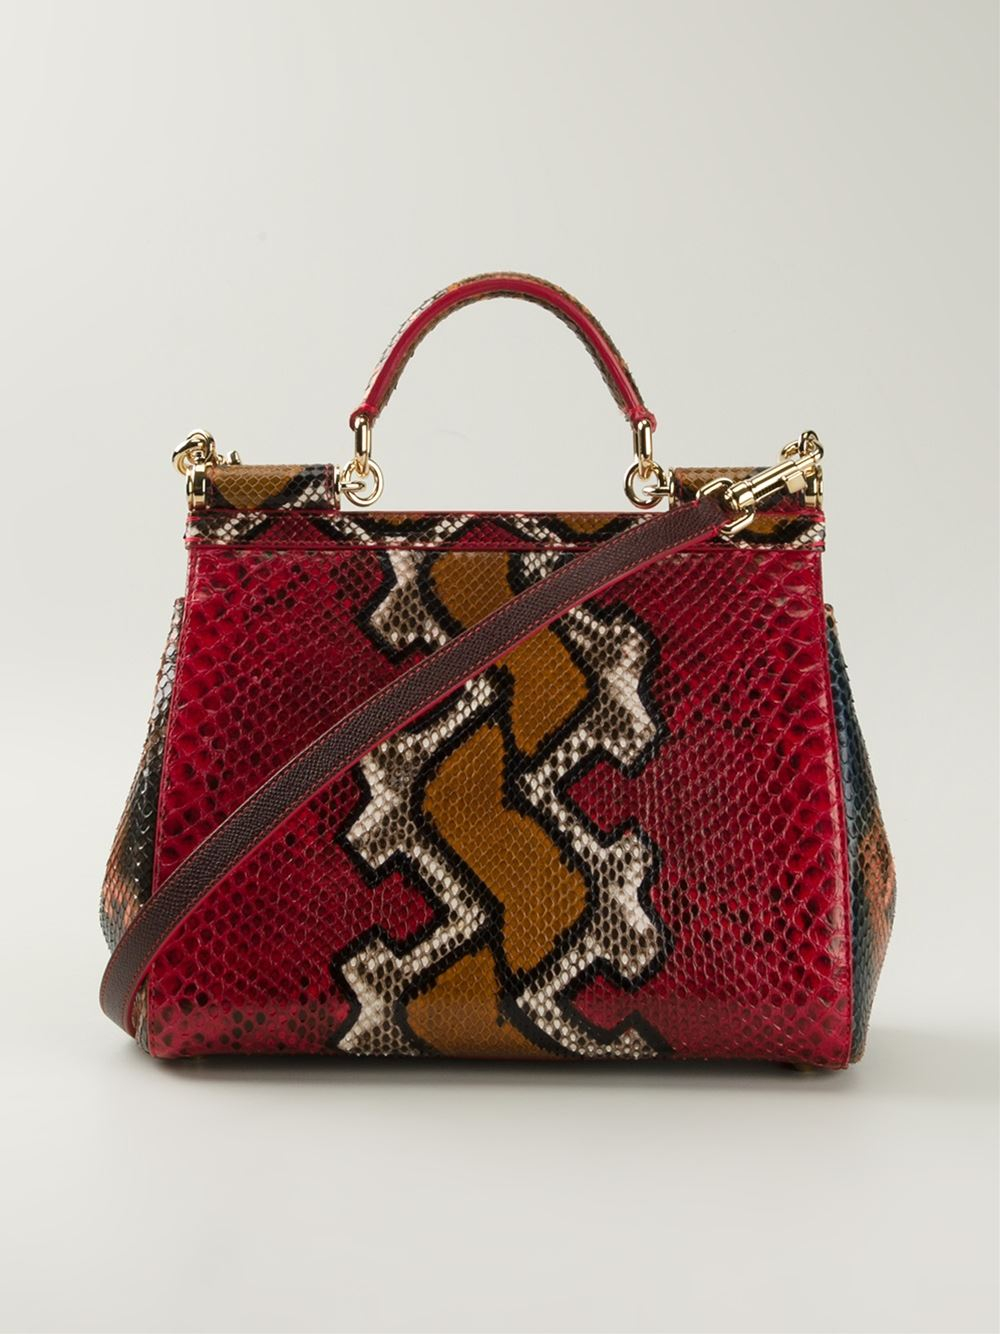 Dolce & Gabbana Sicily Limited-Edition Medium Tote in Red